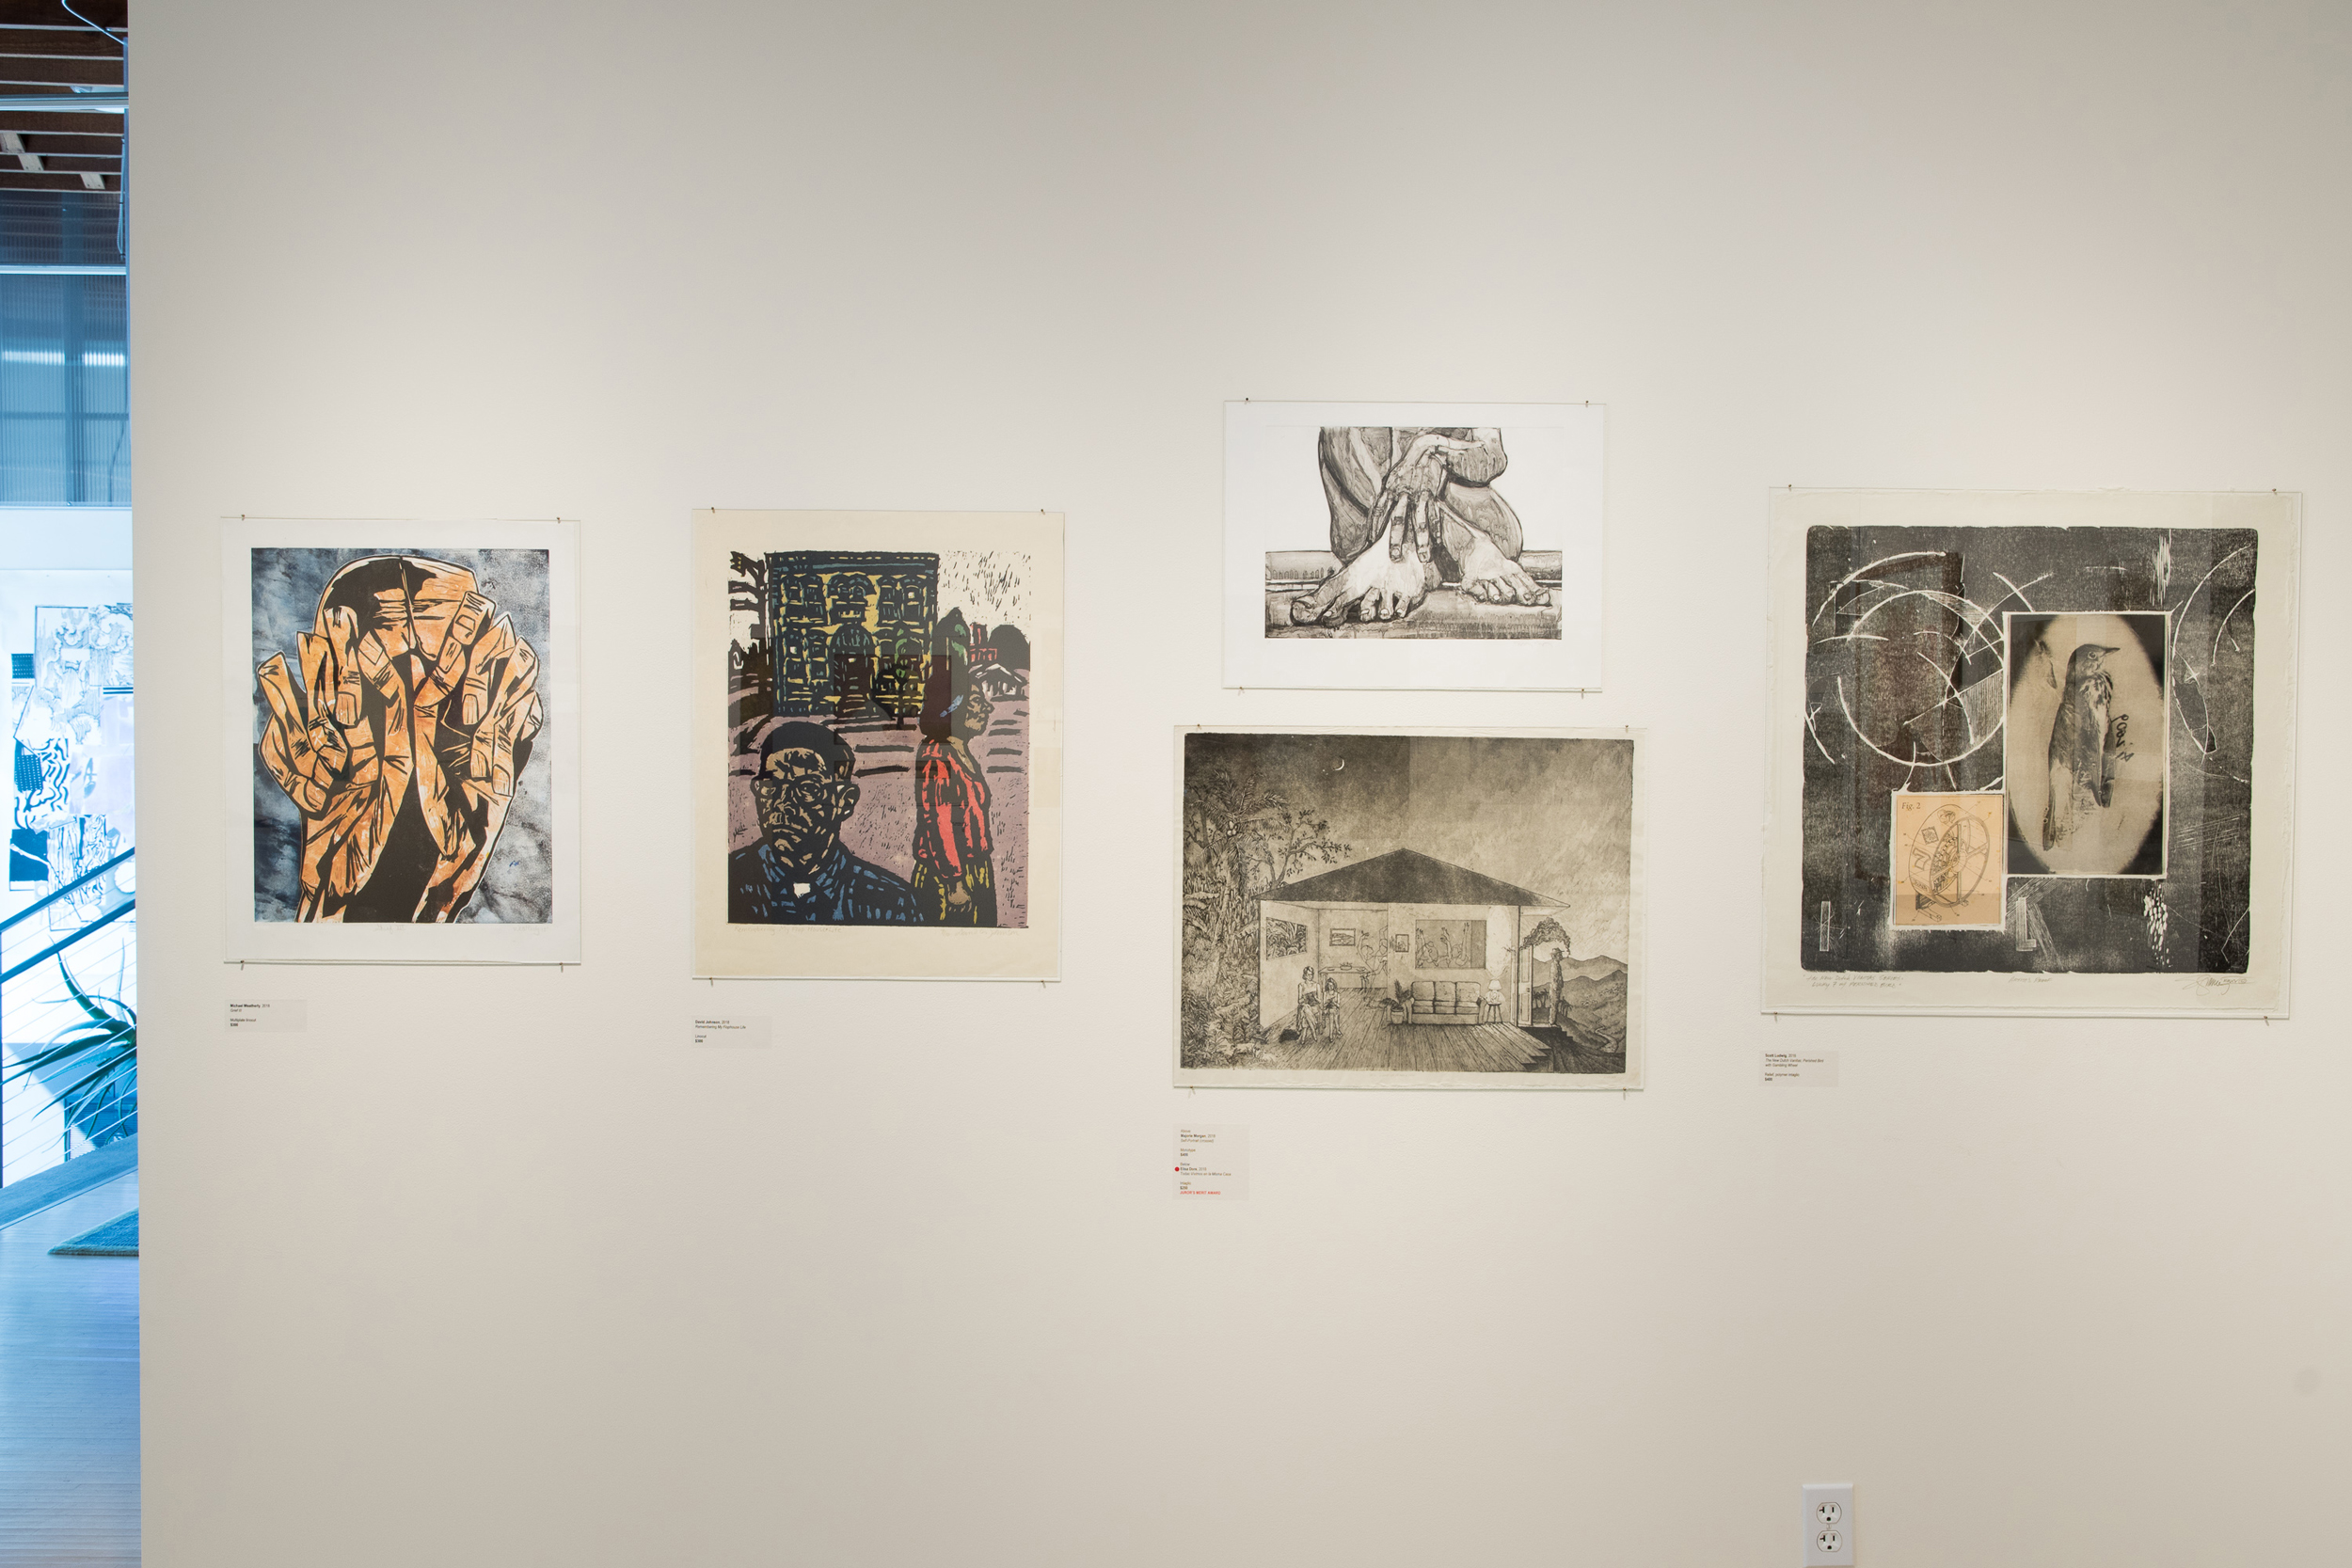 Highpoint PrintmakingStand Out Prints Exhibit180927a0297.JPG